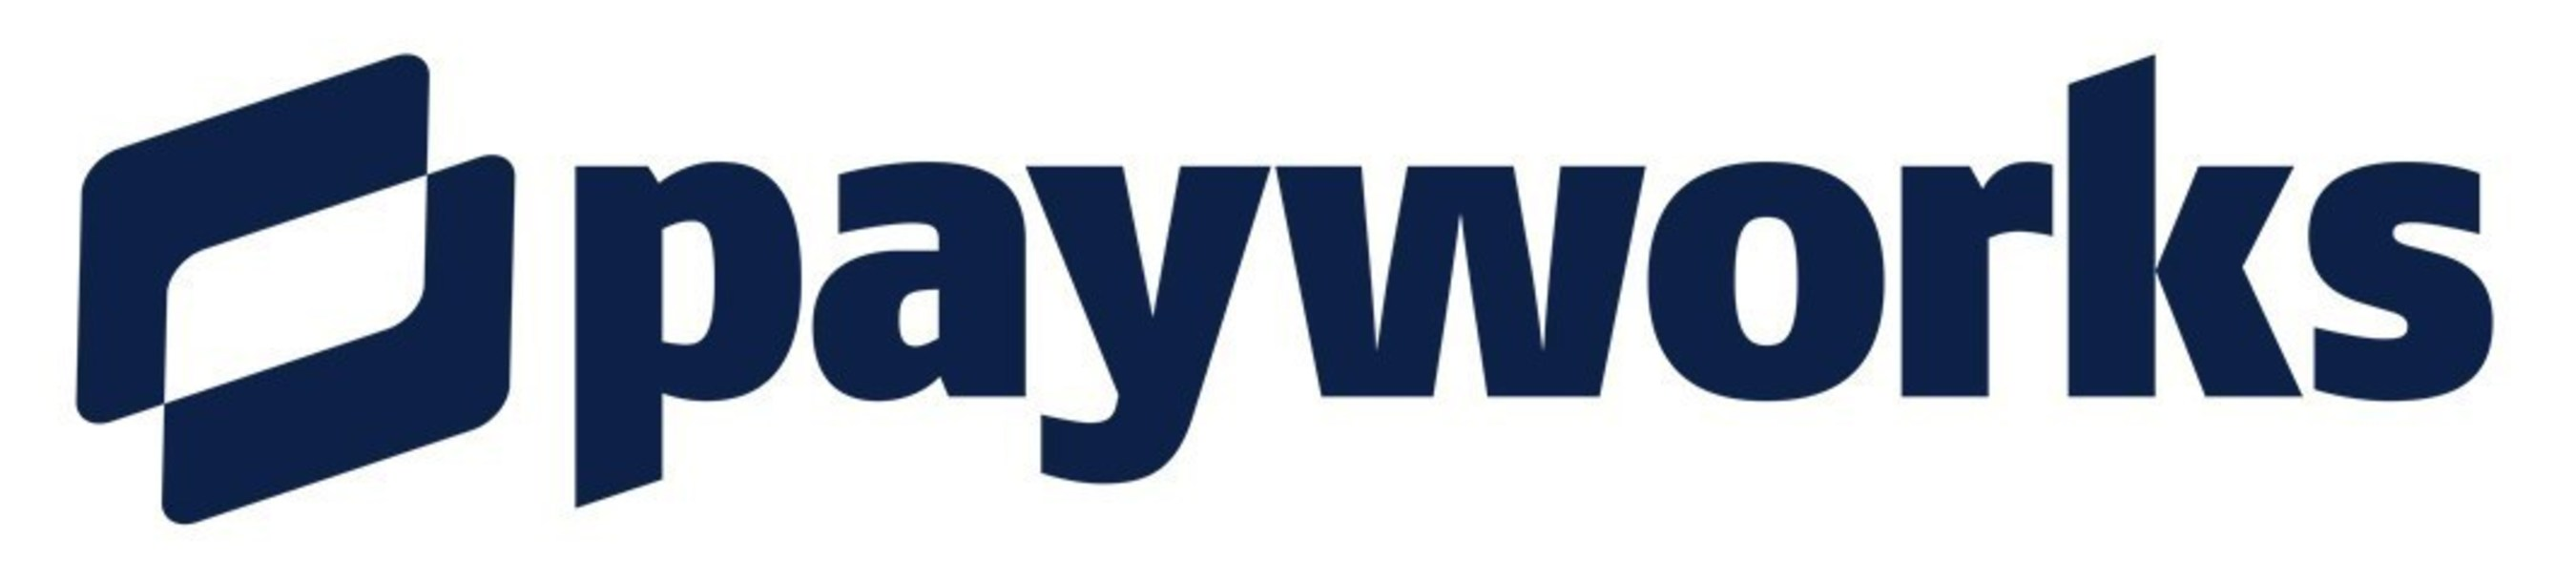 Payworks Names 360 Payments as First Independent Software Vendor (ISV) Partner in the United States